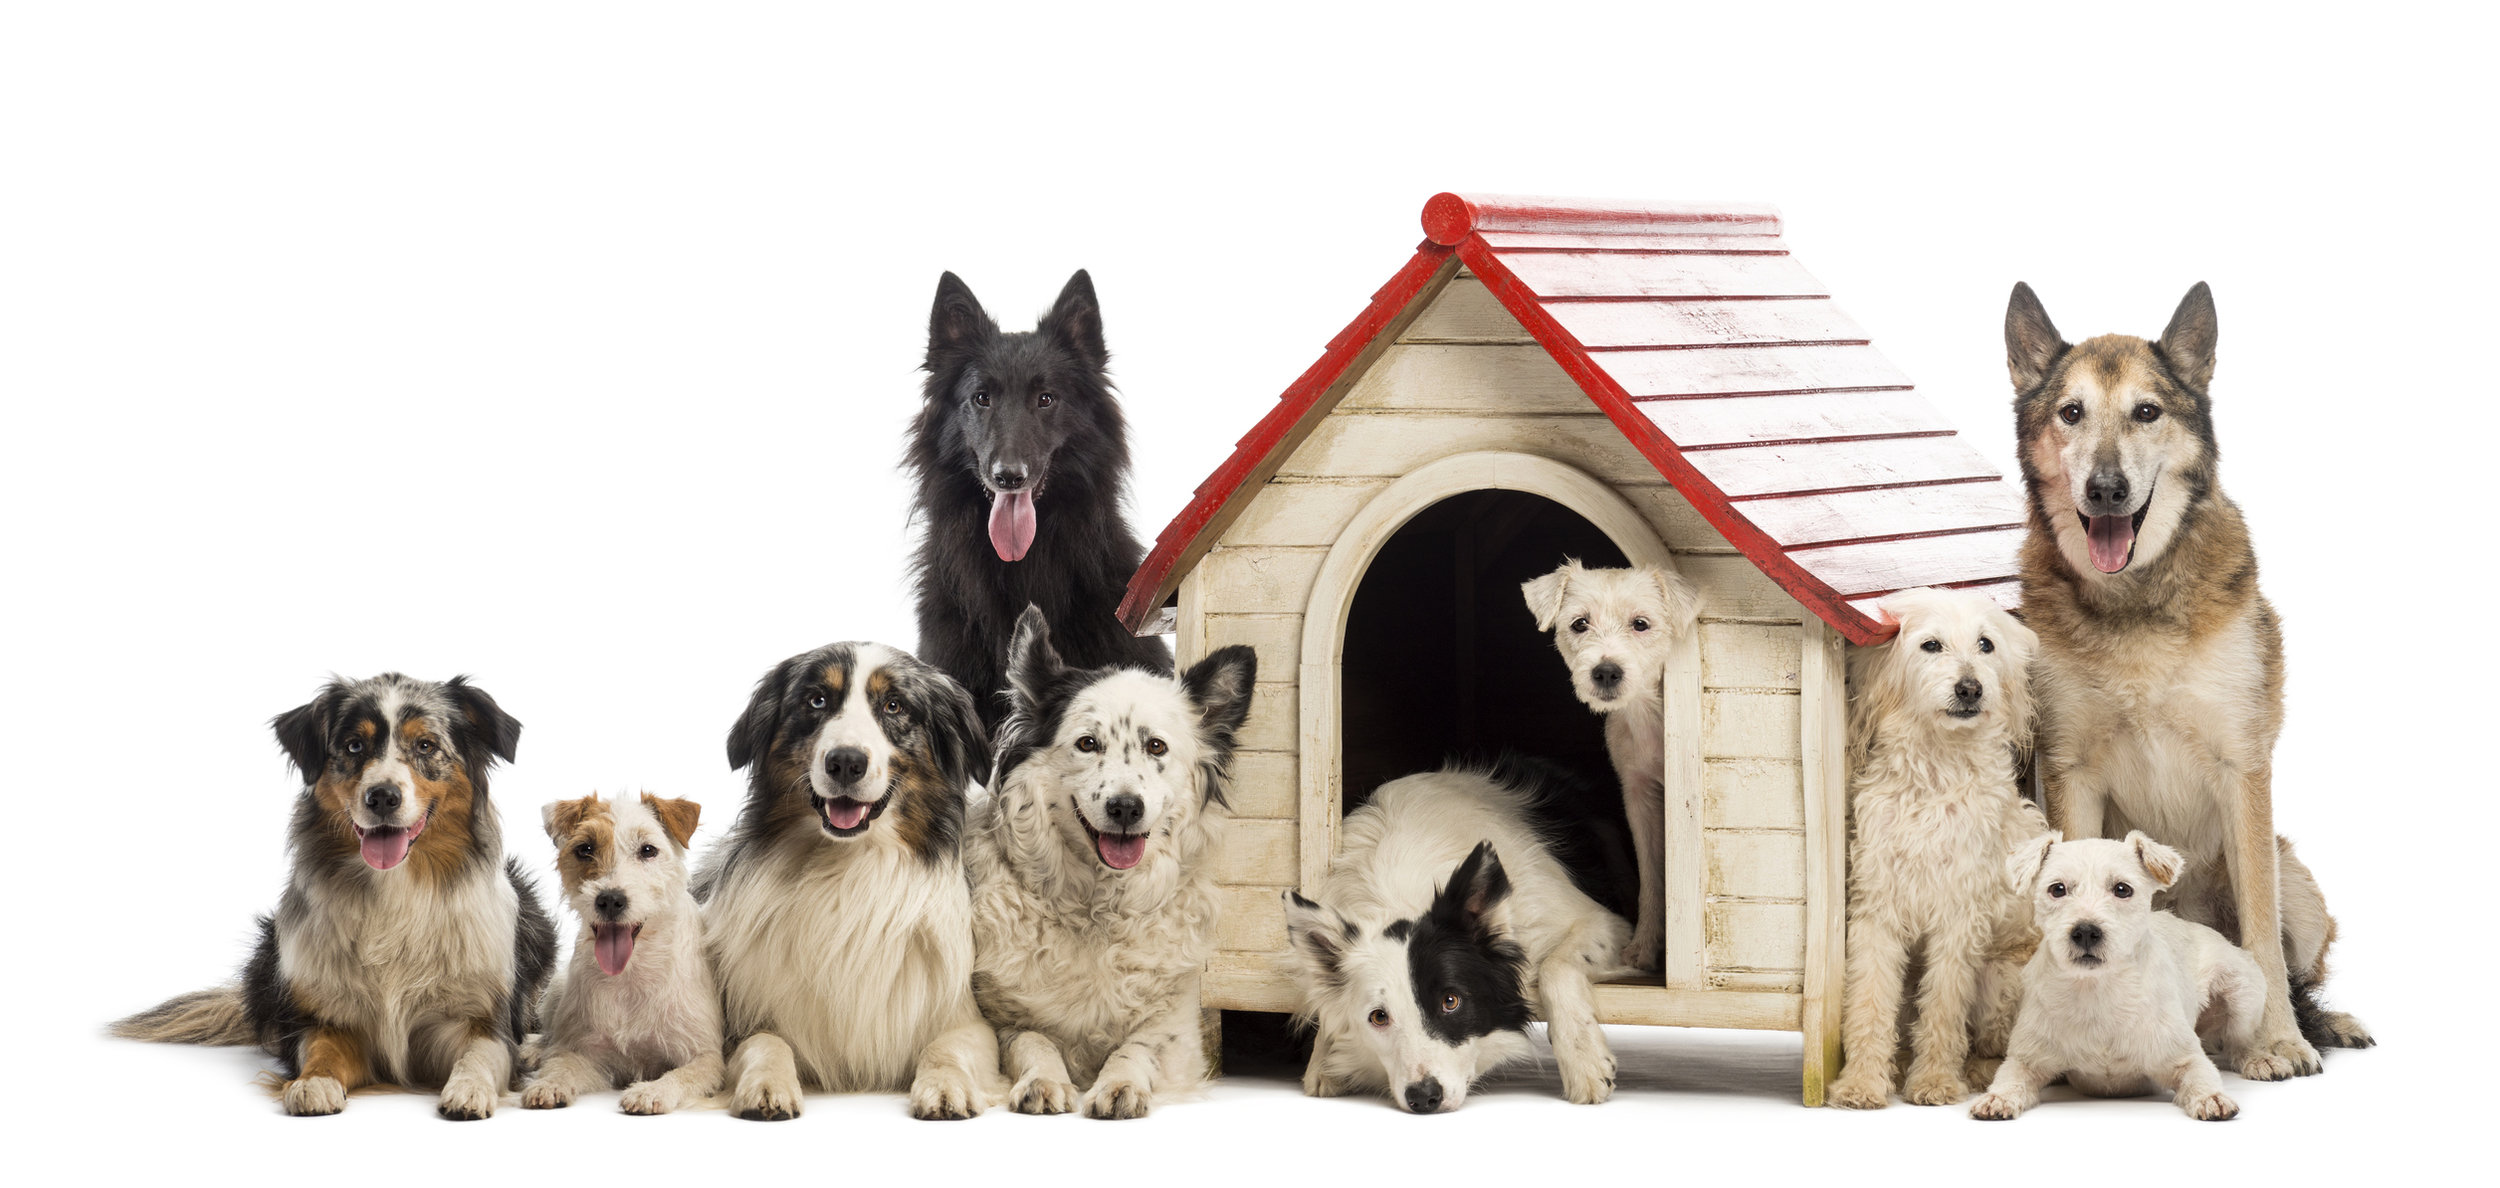 Advanced Obedience Class - If your dog has a good understanding of the basic commands and you are looking to elevate the training to the next level, this class is for you! Advanced Obedience Class will cover topics including tune ups, off leash work, heavy distraction work, agility work, and more! All ages and breeds are welcome!